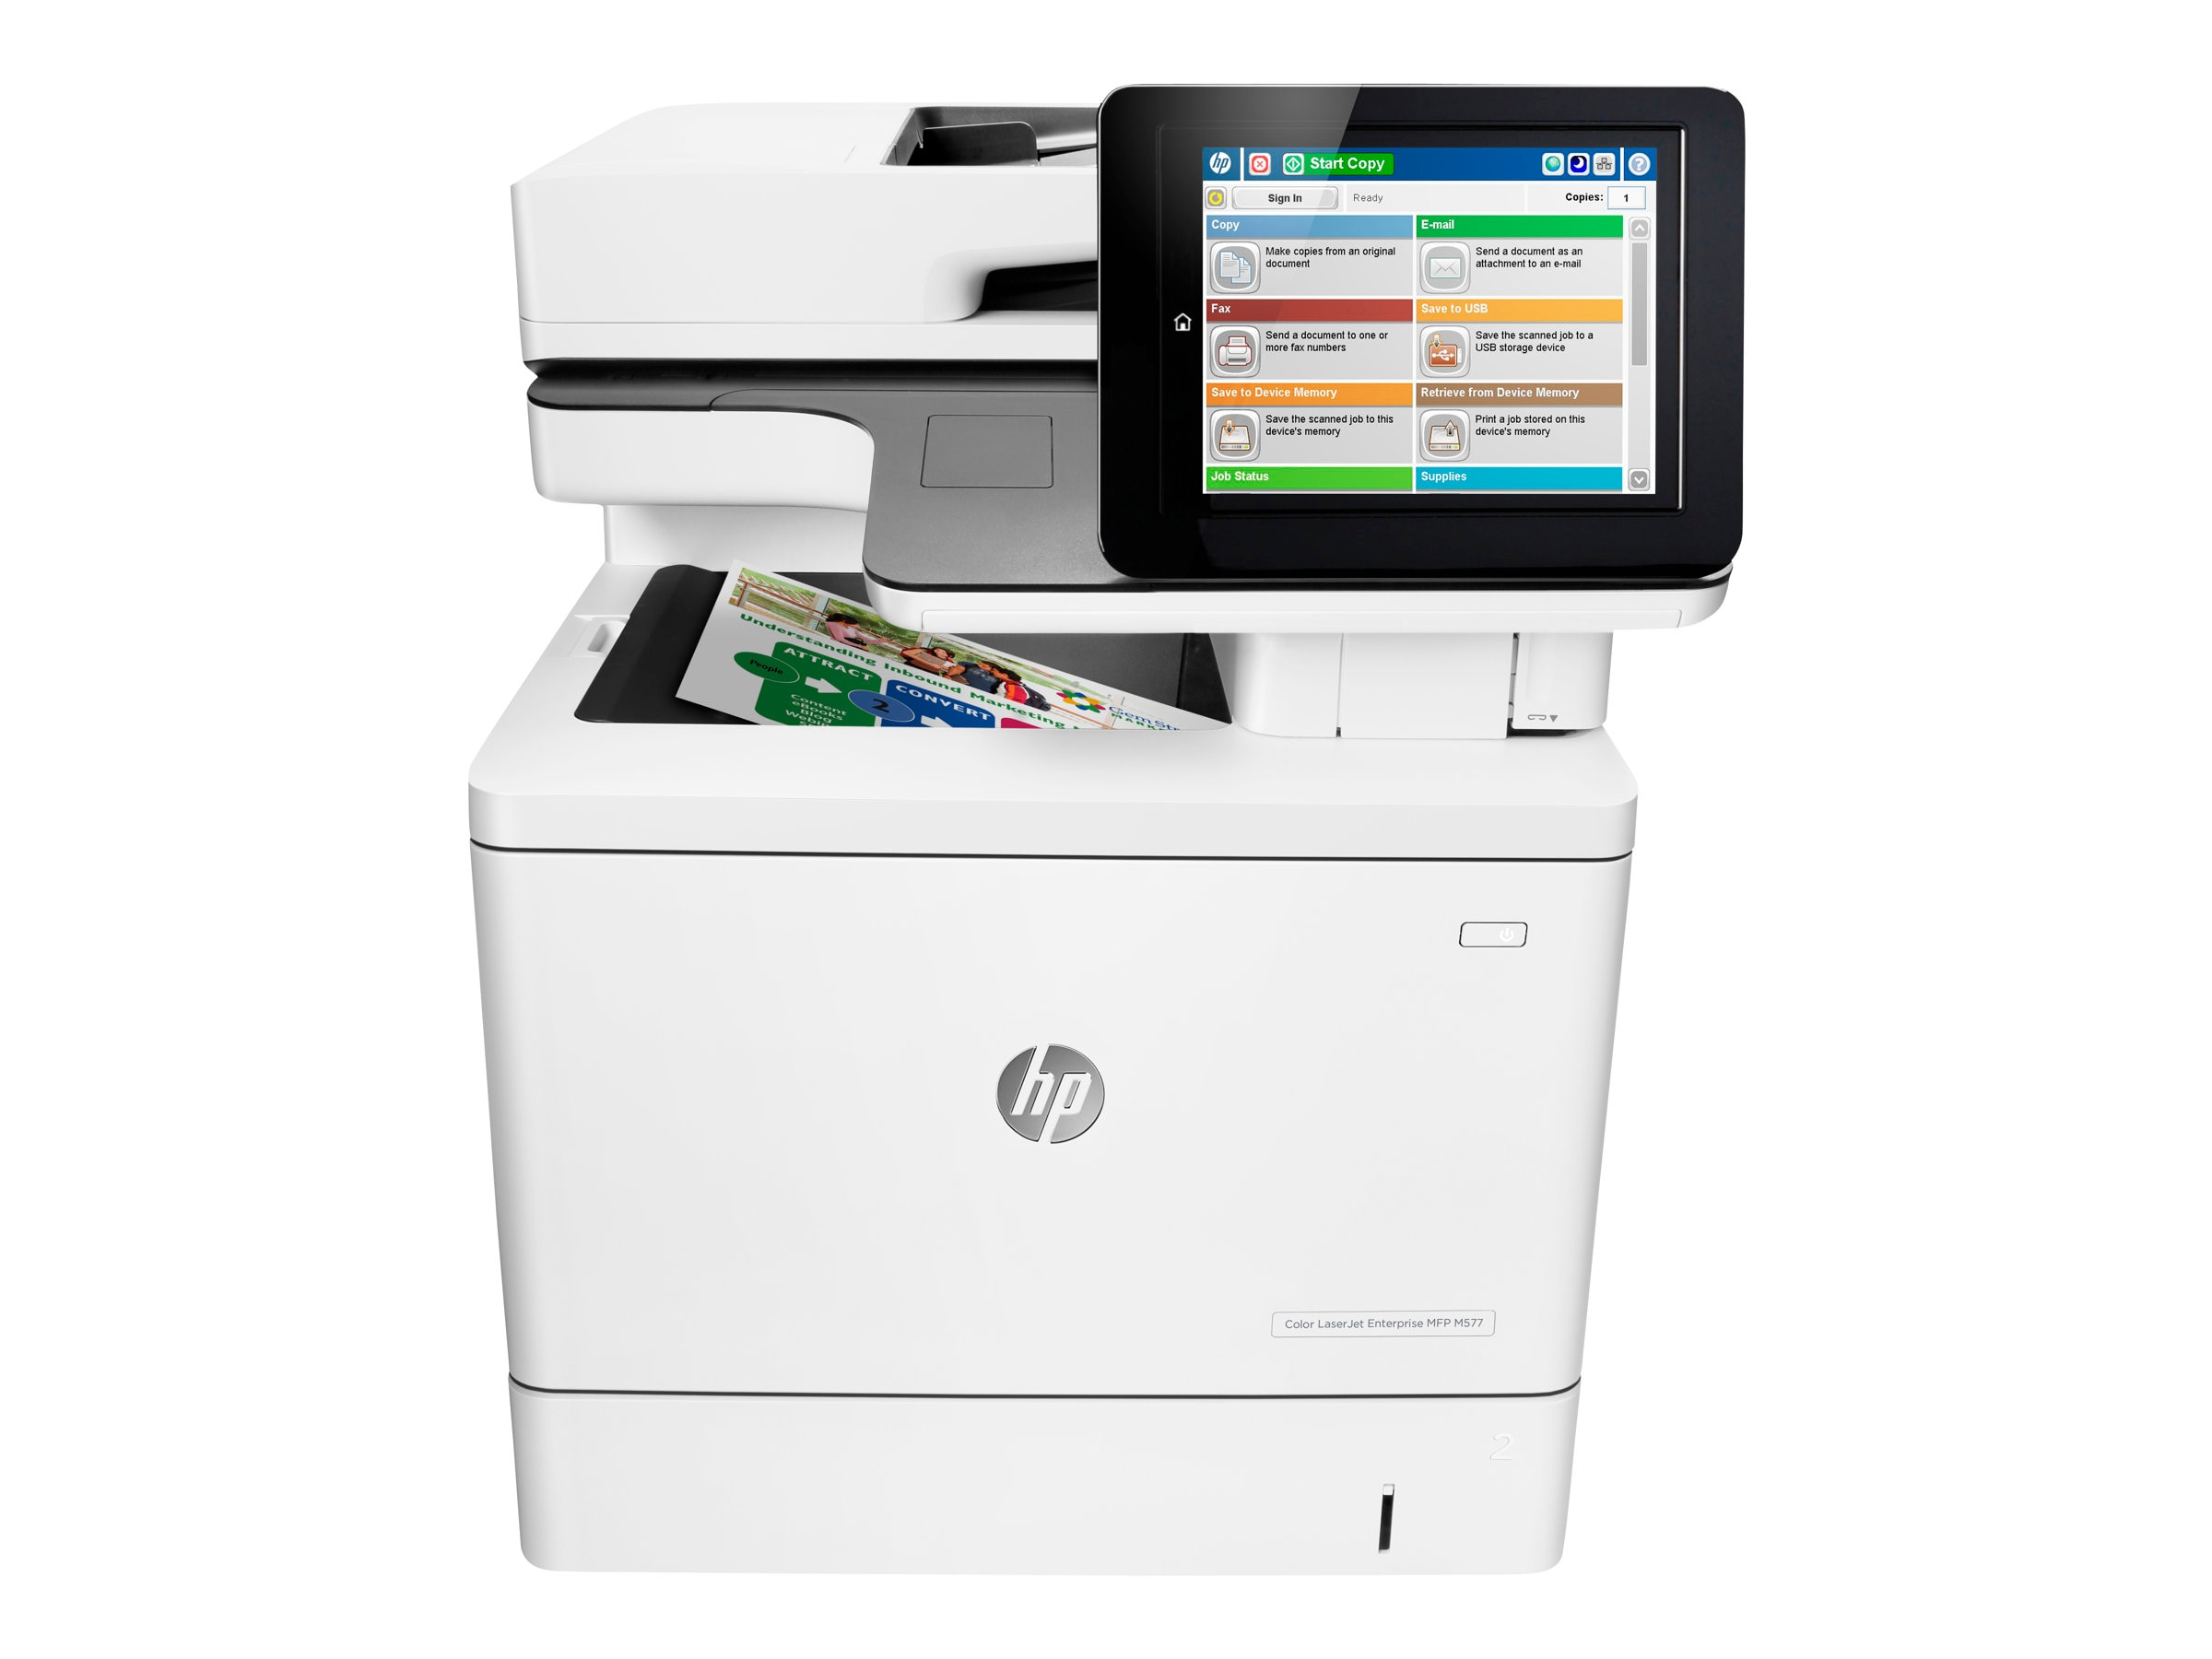 HP Color LaserJet Enterprise MFP M577f, B5L47A#BGJ